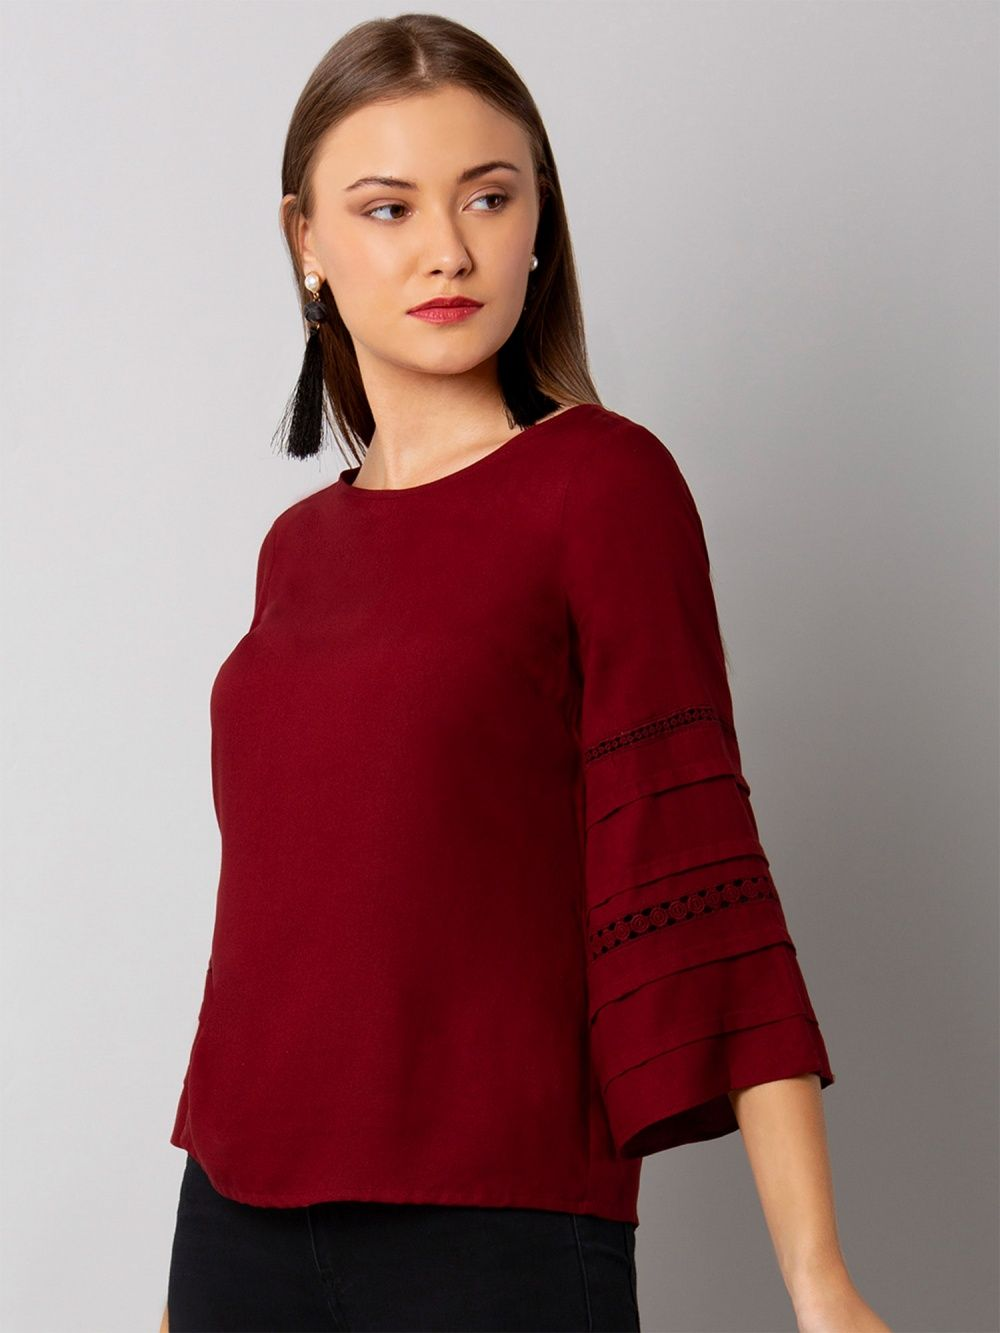 757e1cbecd6 Faballey Maroon Lace Insert Flared Sleeve Top